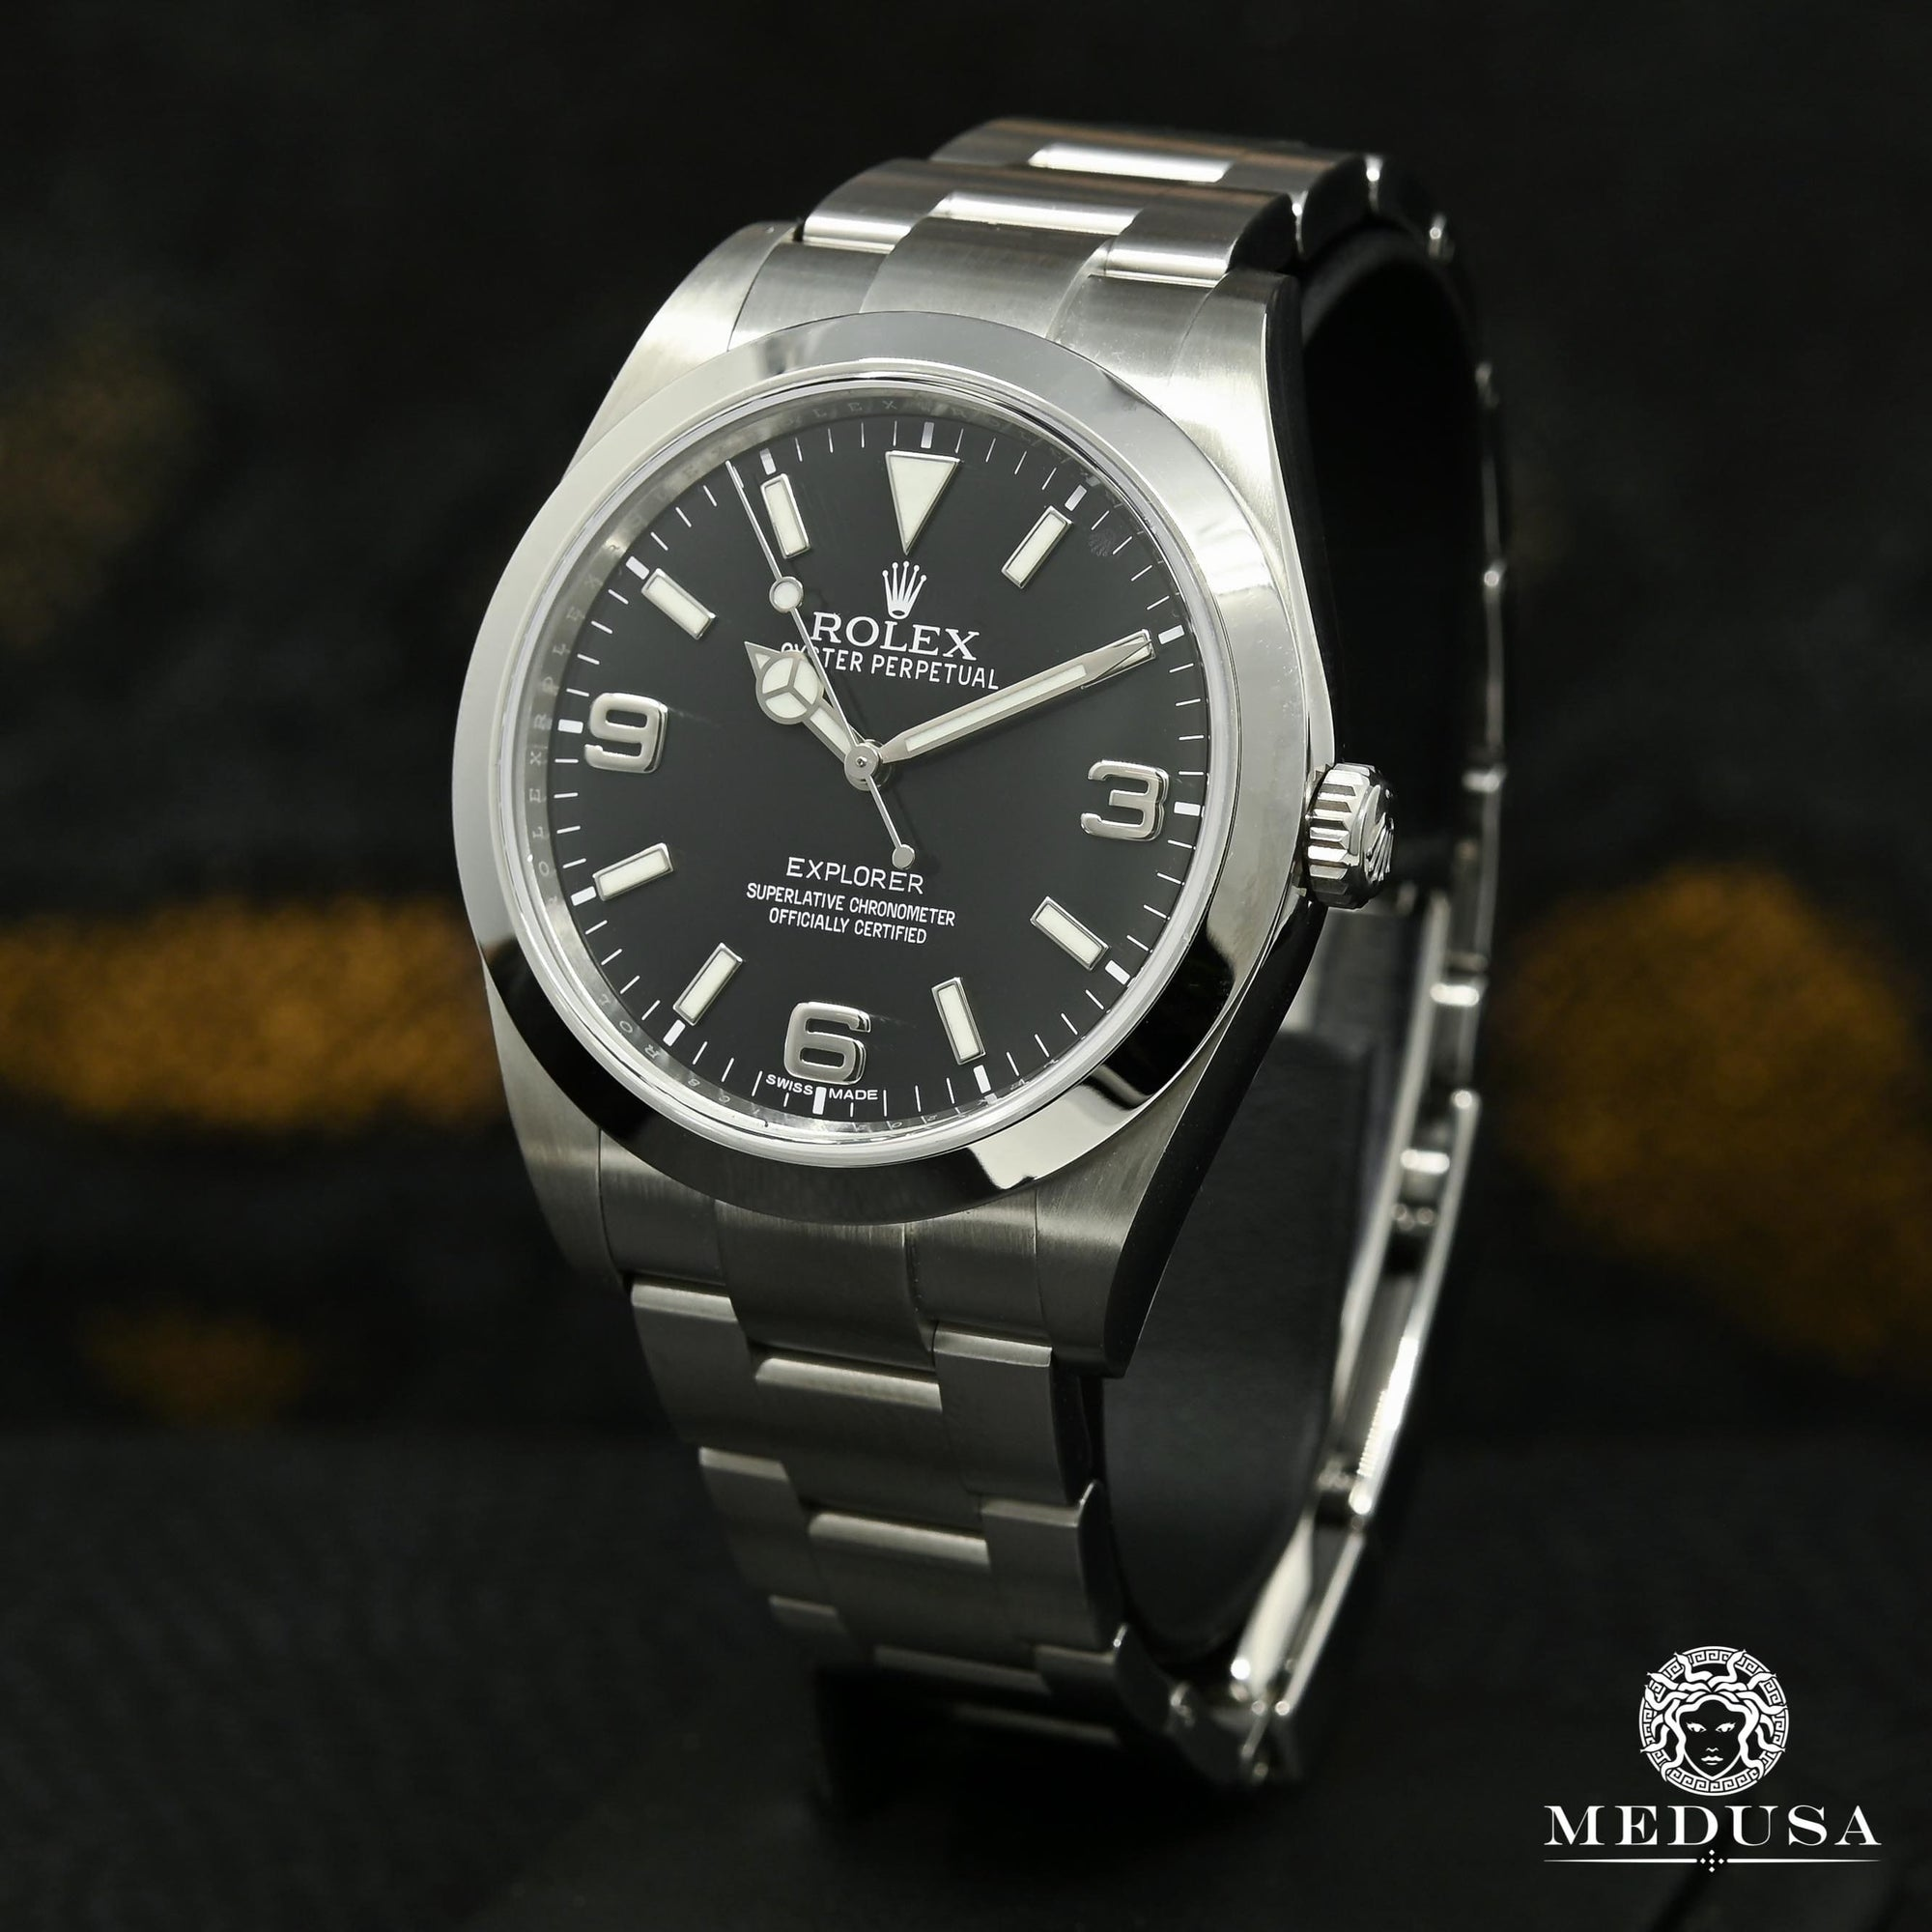 Rolex Explorer 39mm - Black